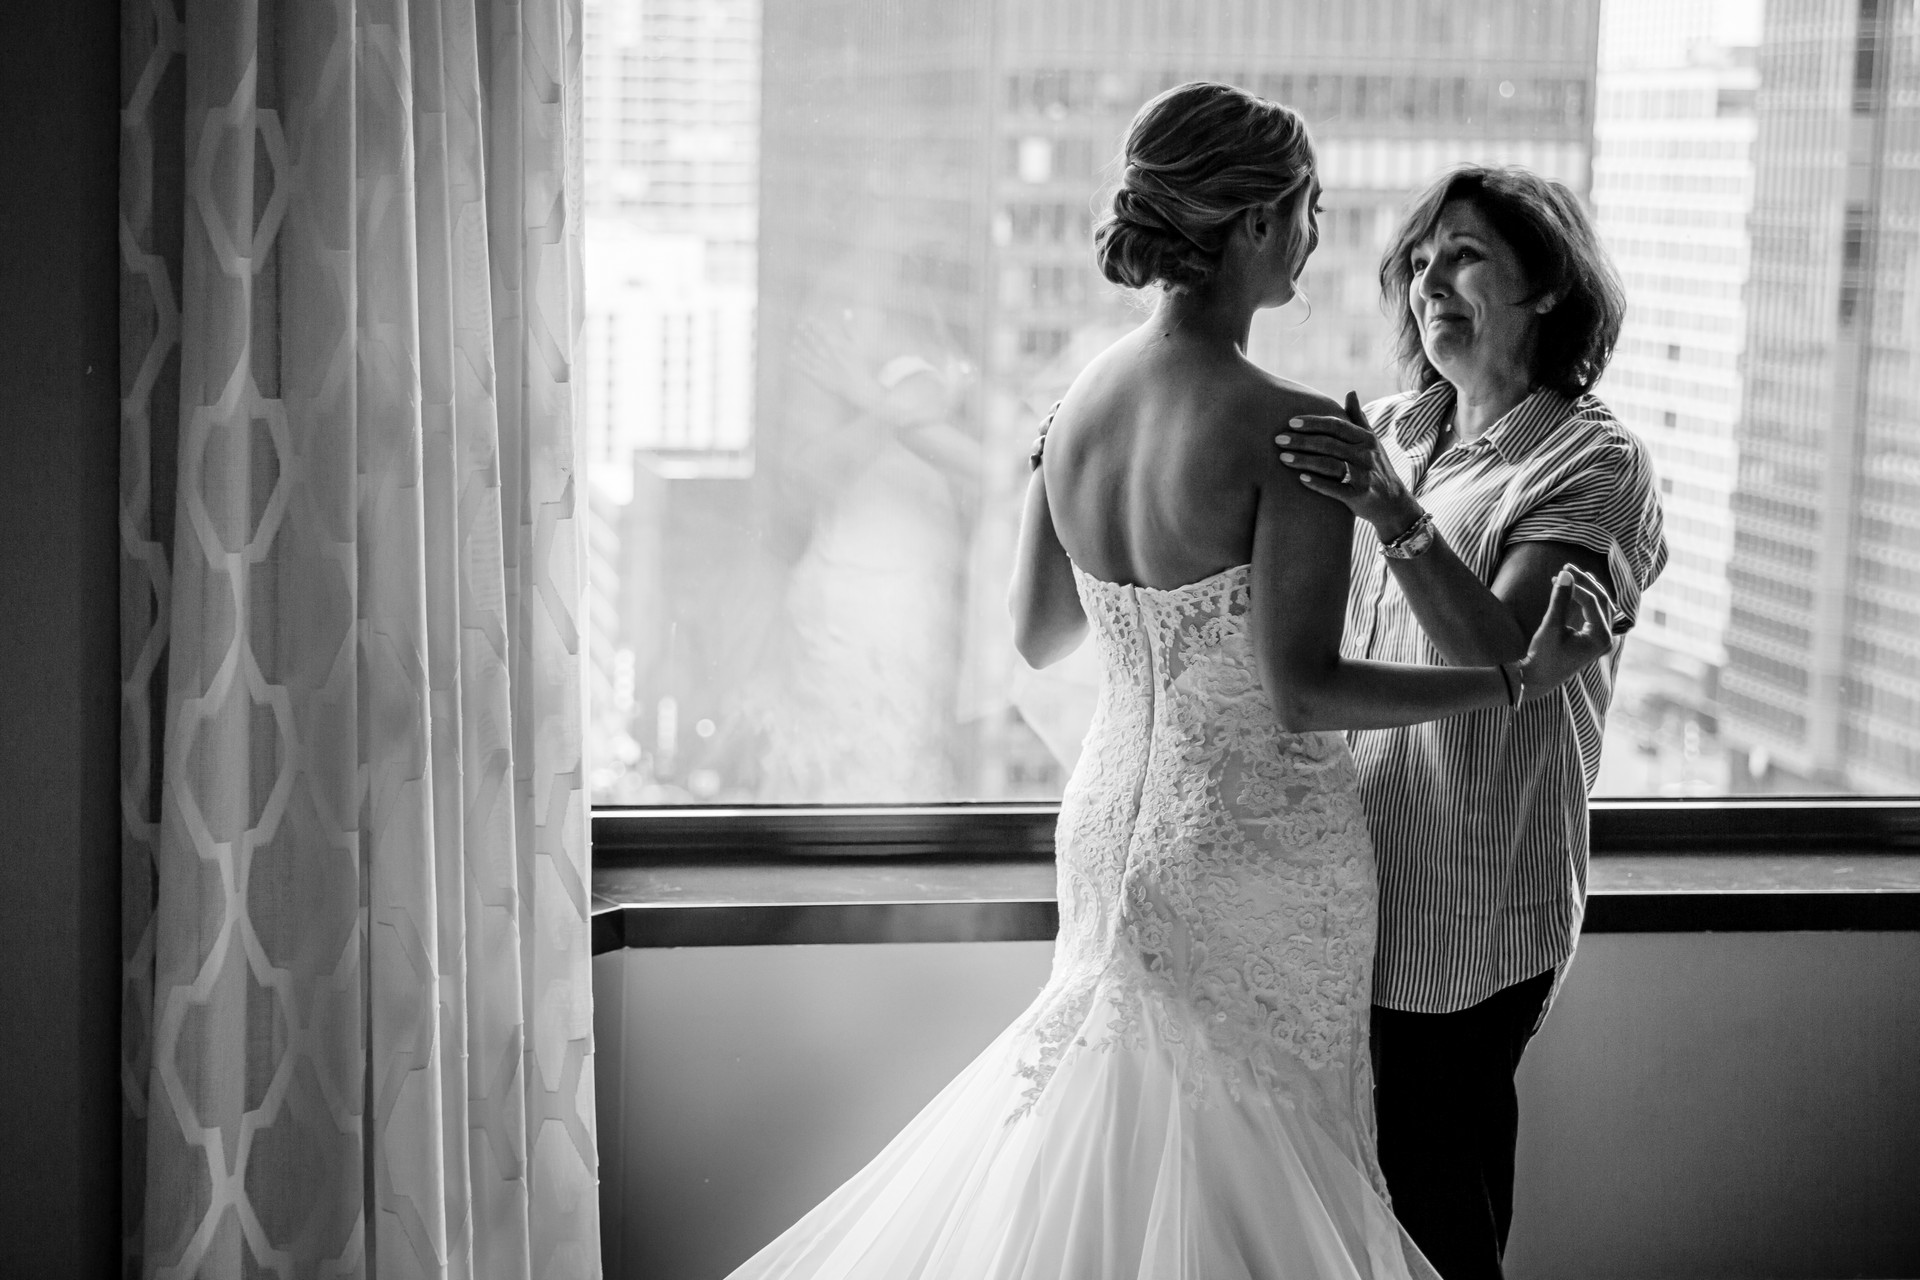 Anticipation of capturing a quiet moment between bride and mom - Wedding Photography Moments